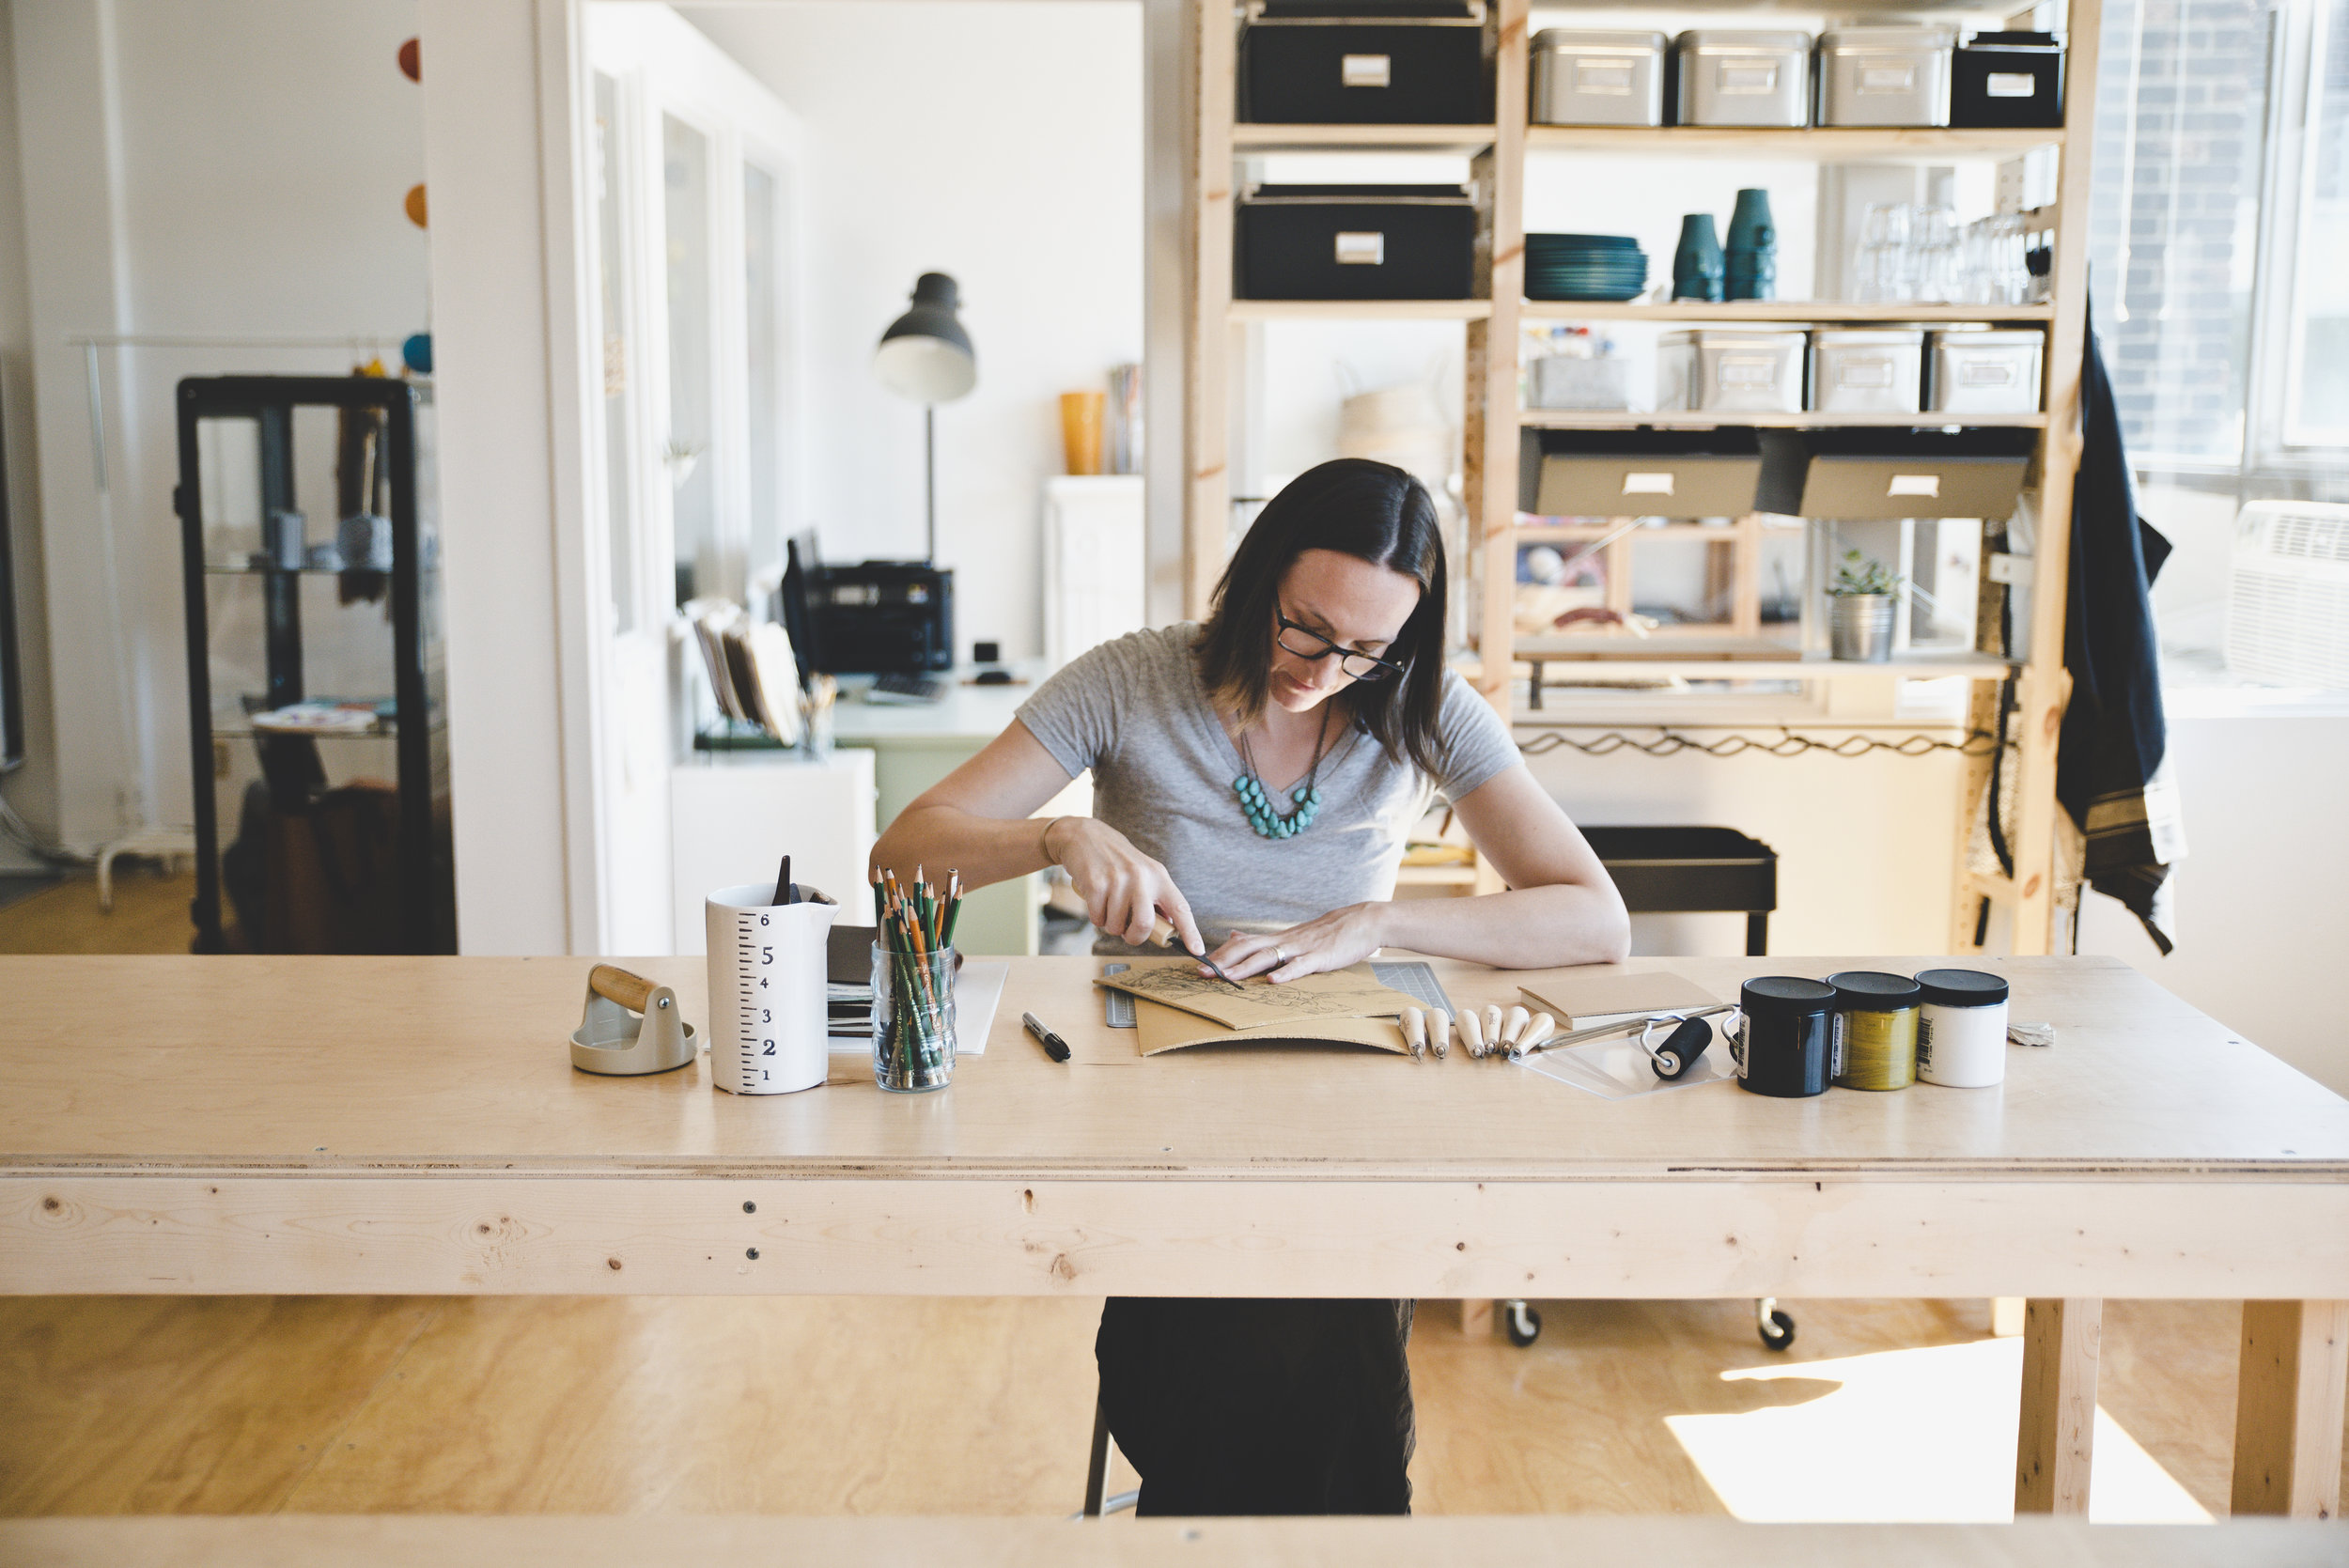 Sarah Nemecek - I founded Studio How-To in 2017, after making things, creating, and teaching friends and family for over 30 years.I am a maker, teacher, wife, and mother. I live in Cleveland Heights and love bringing creativity to my community.My mission is to share the joy of making things with people who are tired of being stressed and lacking a tangible way to get away from their daily grind.